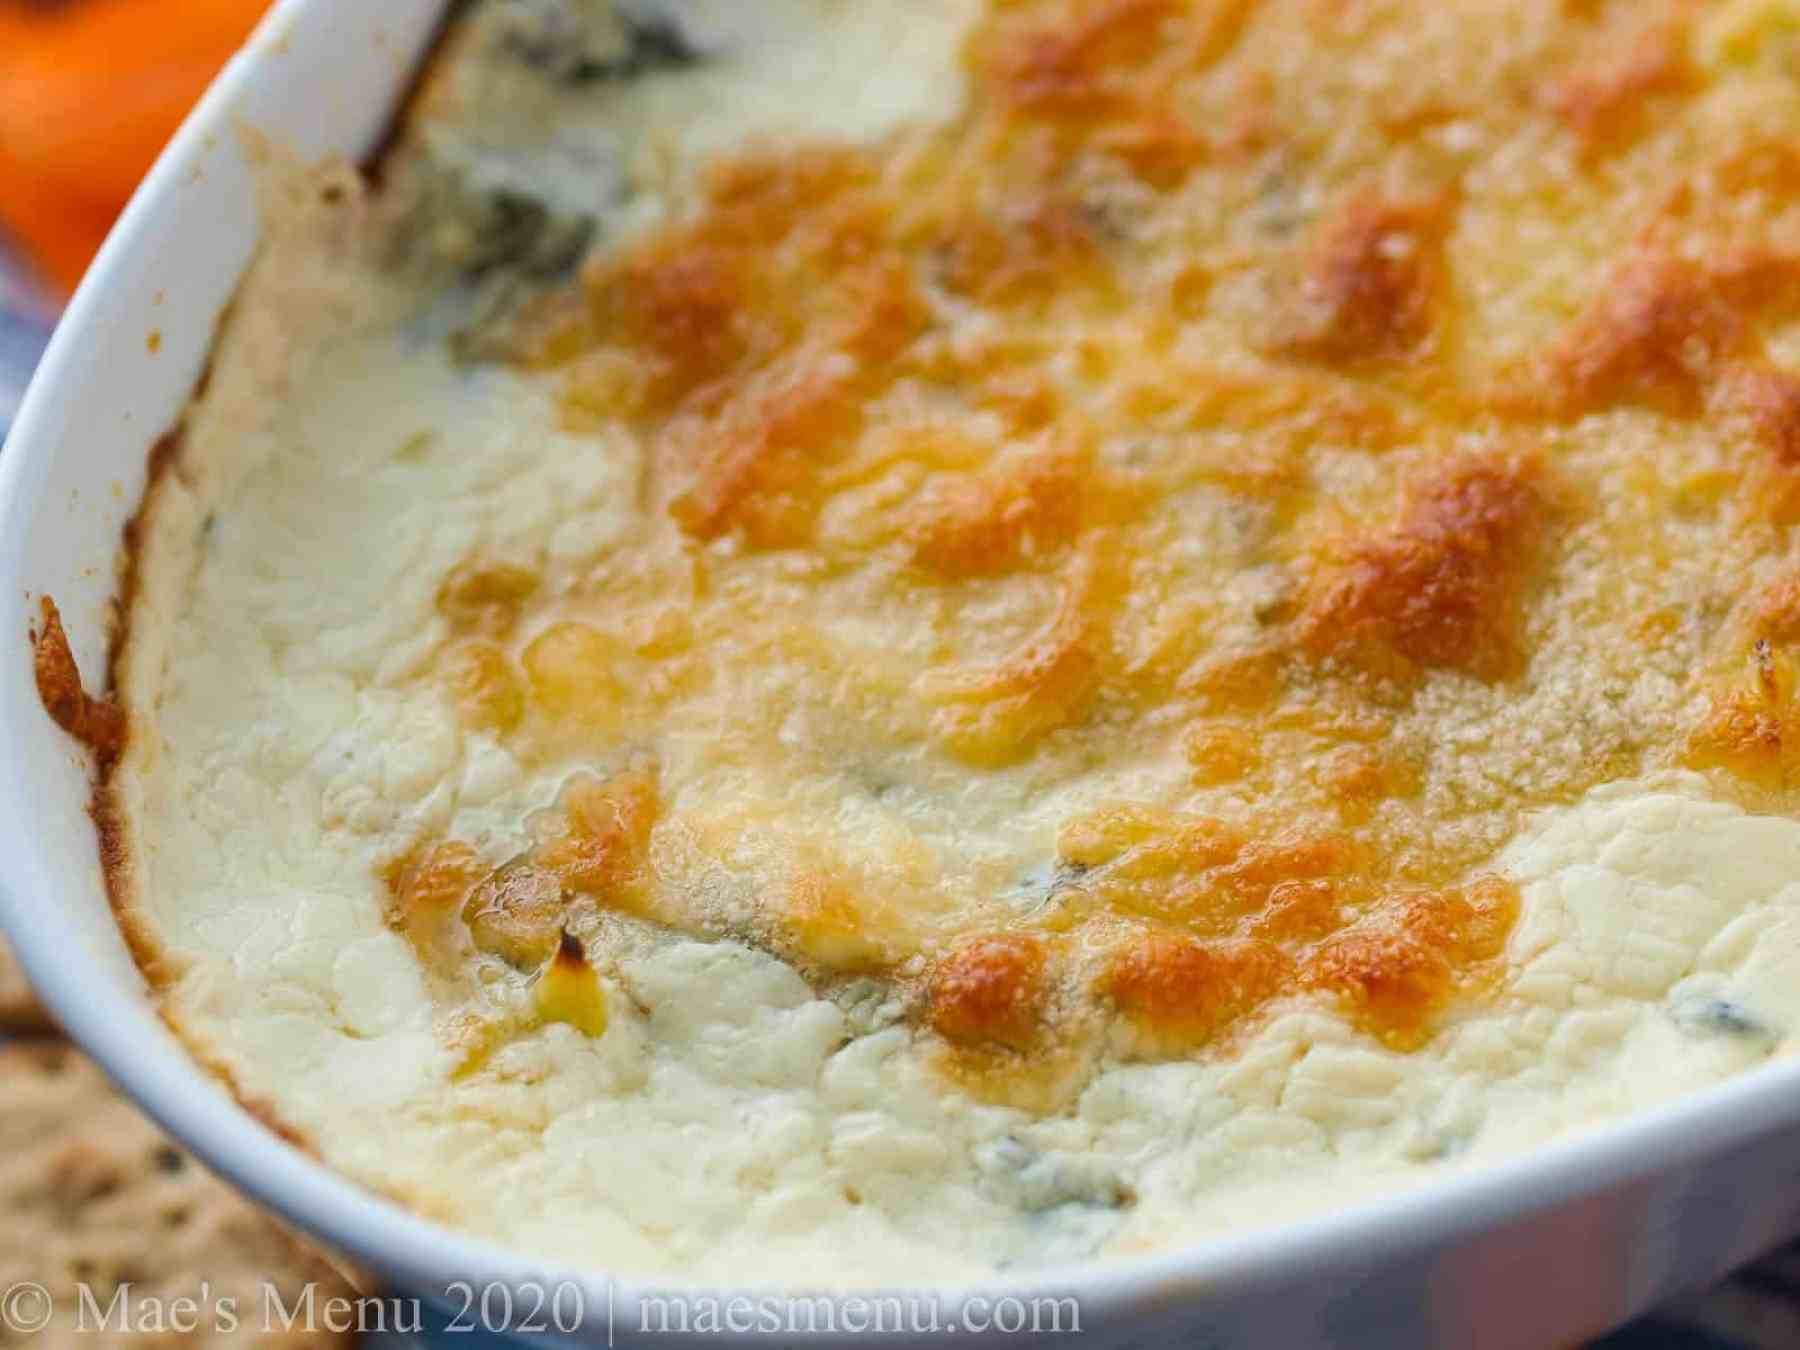 A large pan of baked healthy spinach dip.